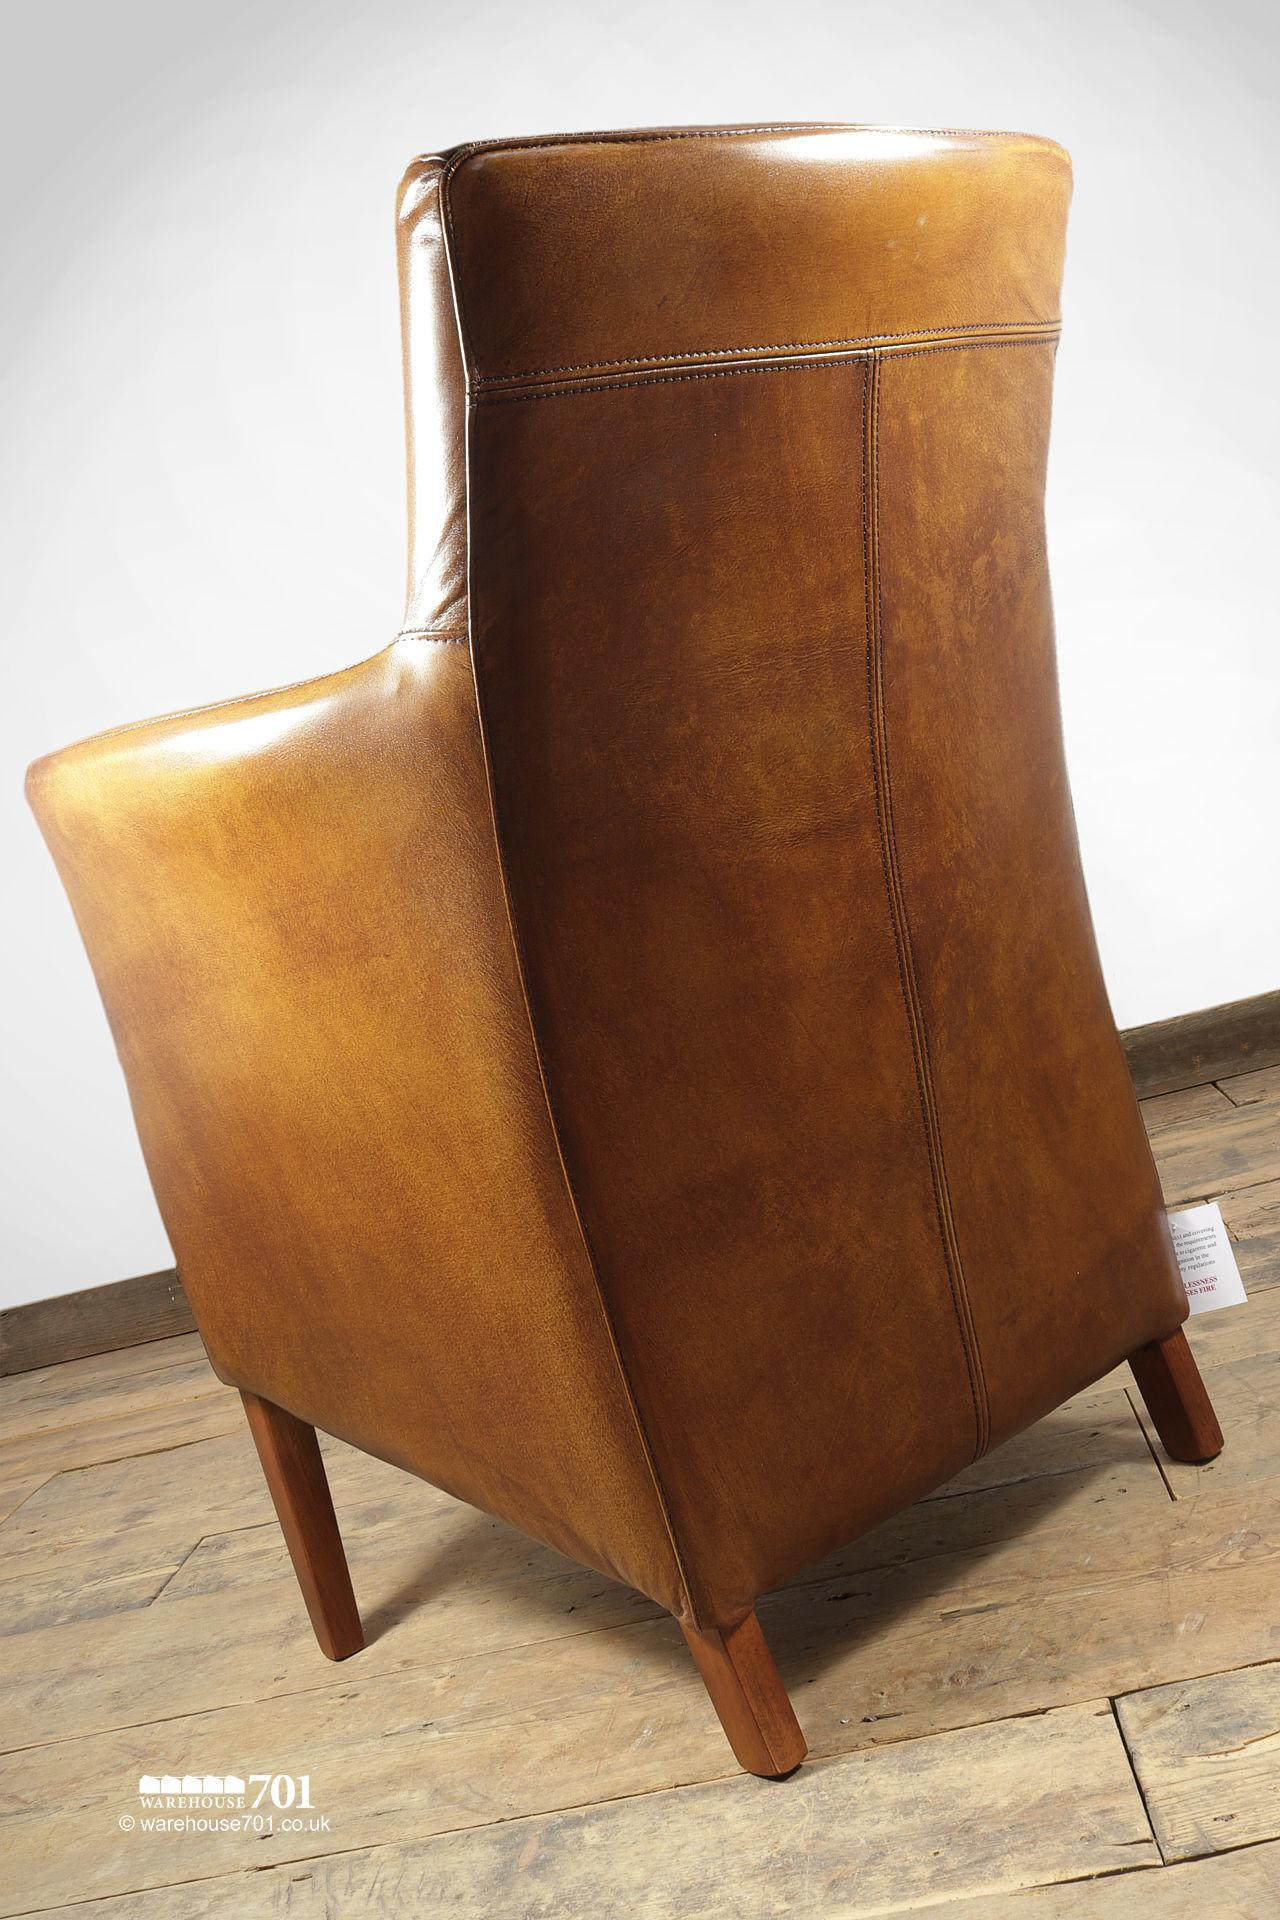 NEW Stylish and Sumptuous Compact Stitched Leather Armchair #5